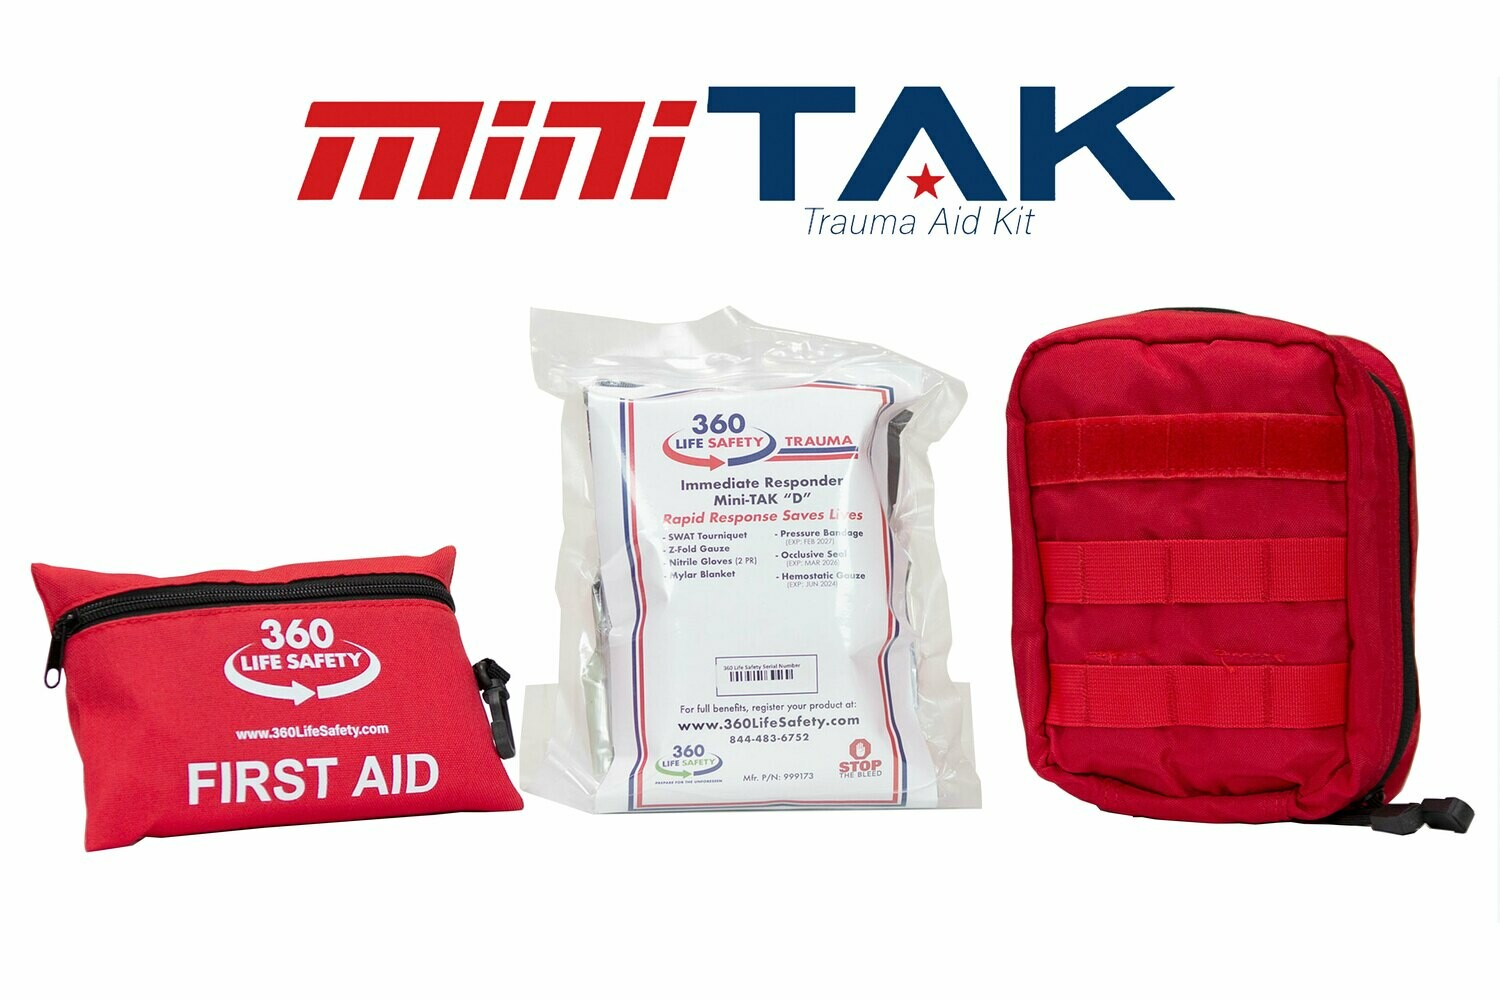 "mini-TAK ""D"" Kit with Molle Bag and First Aid Kit"